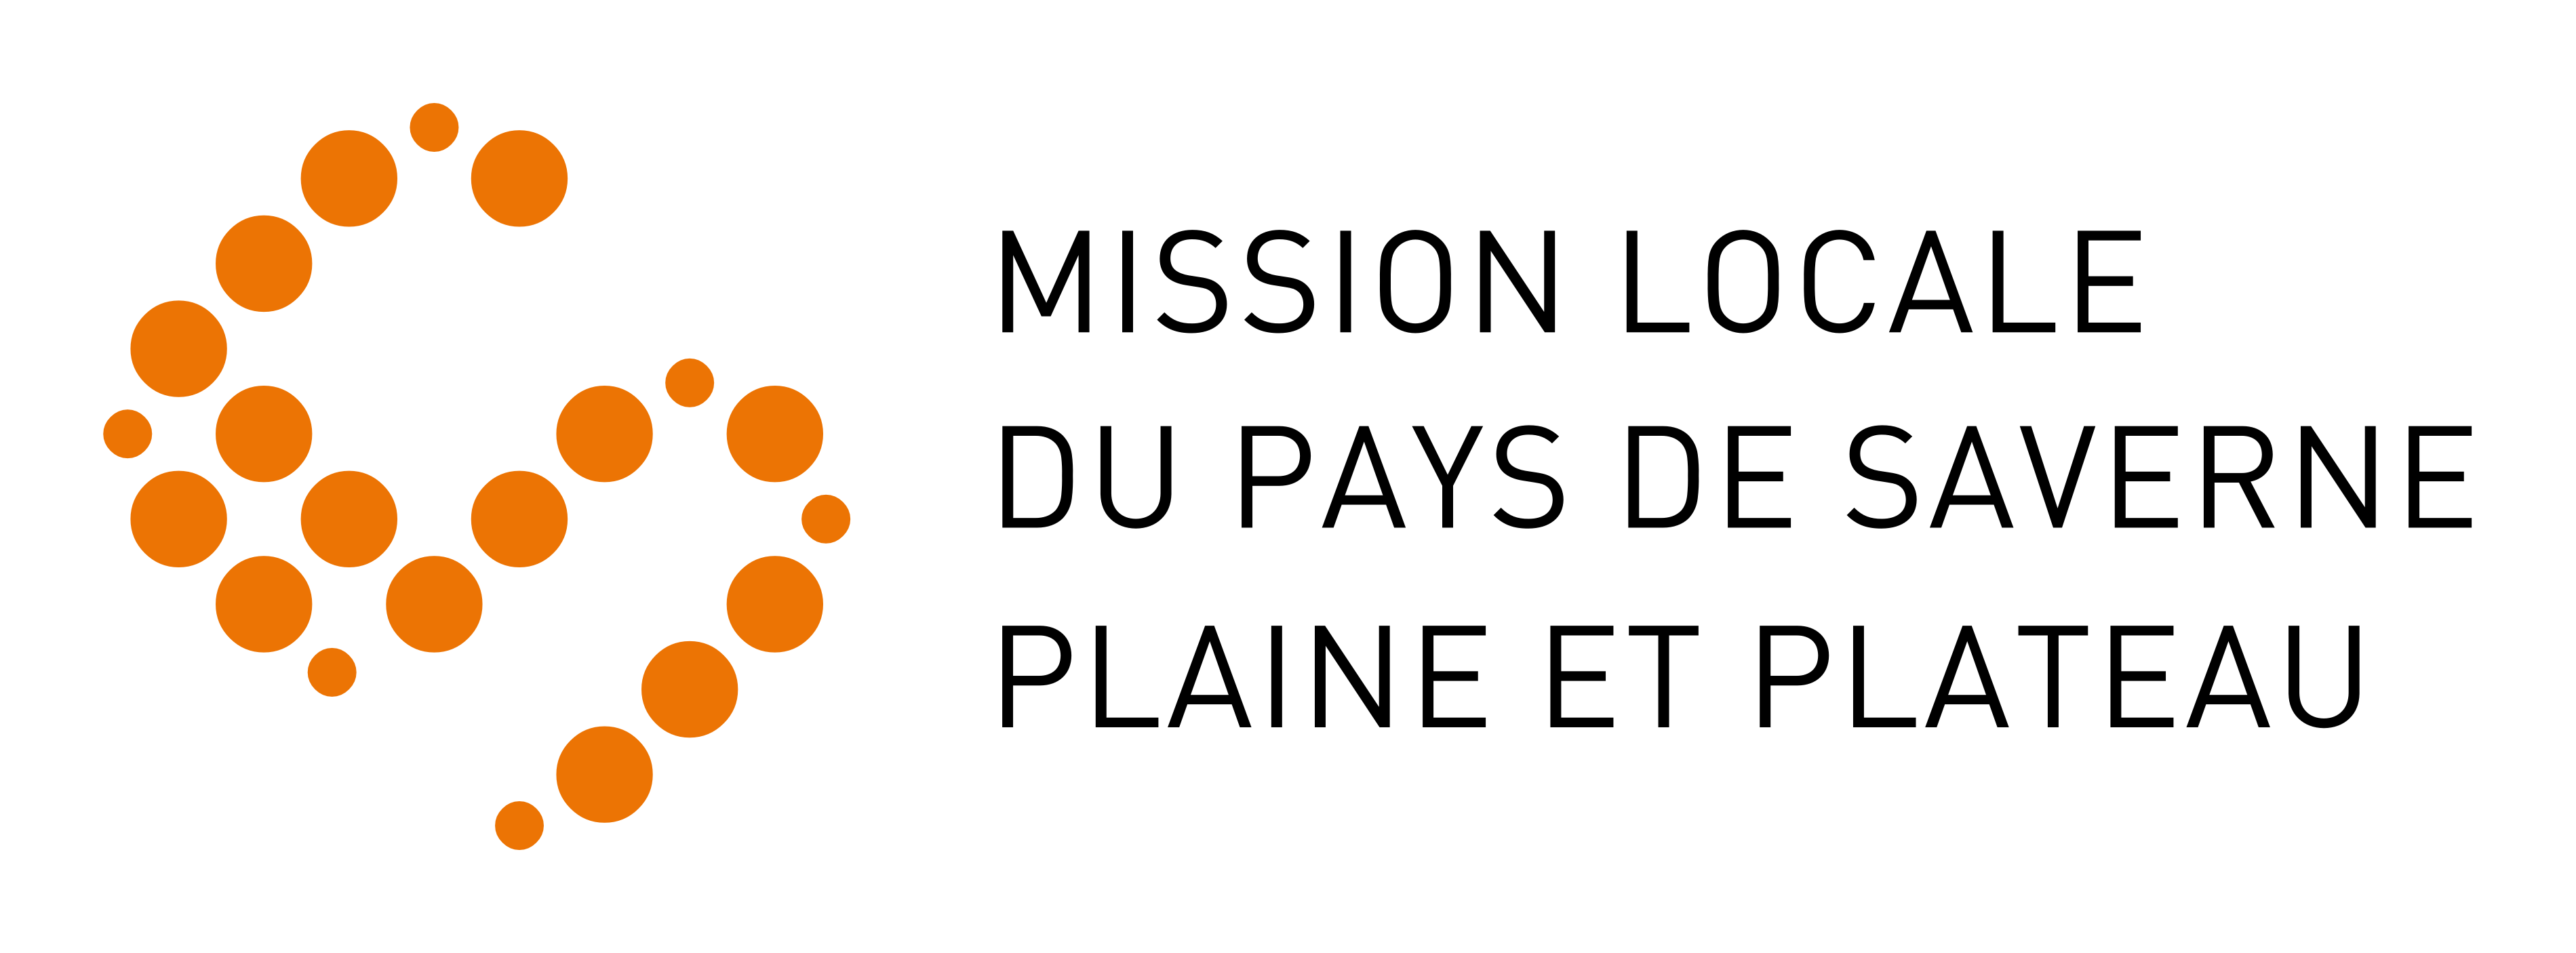 Mission Locale de Saverne